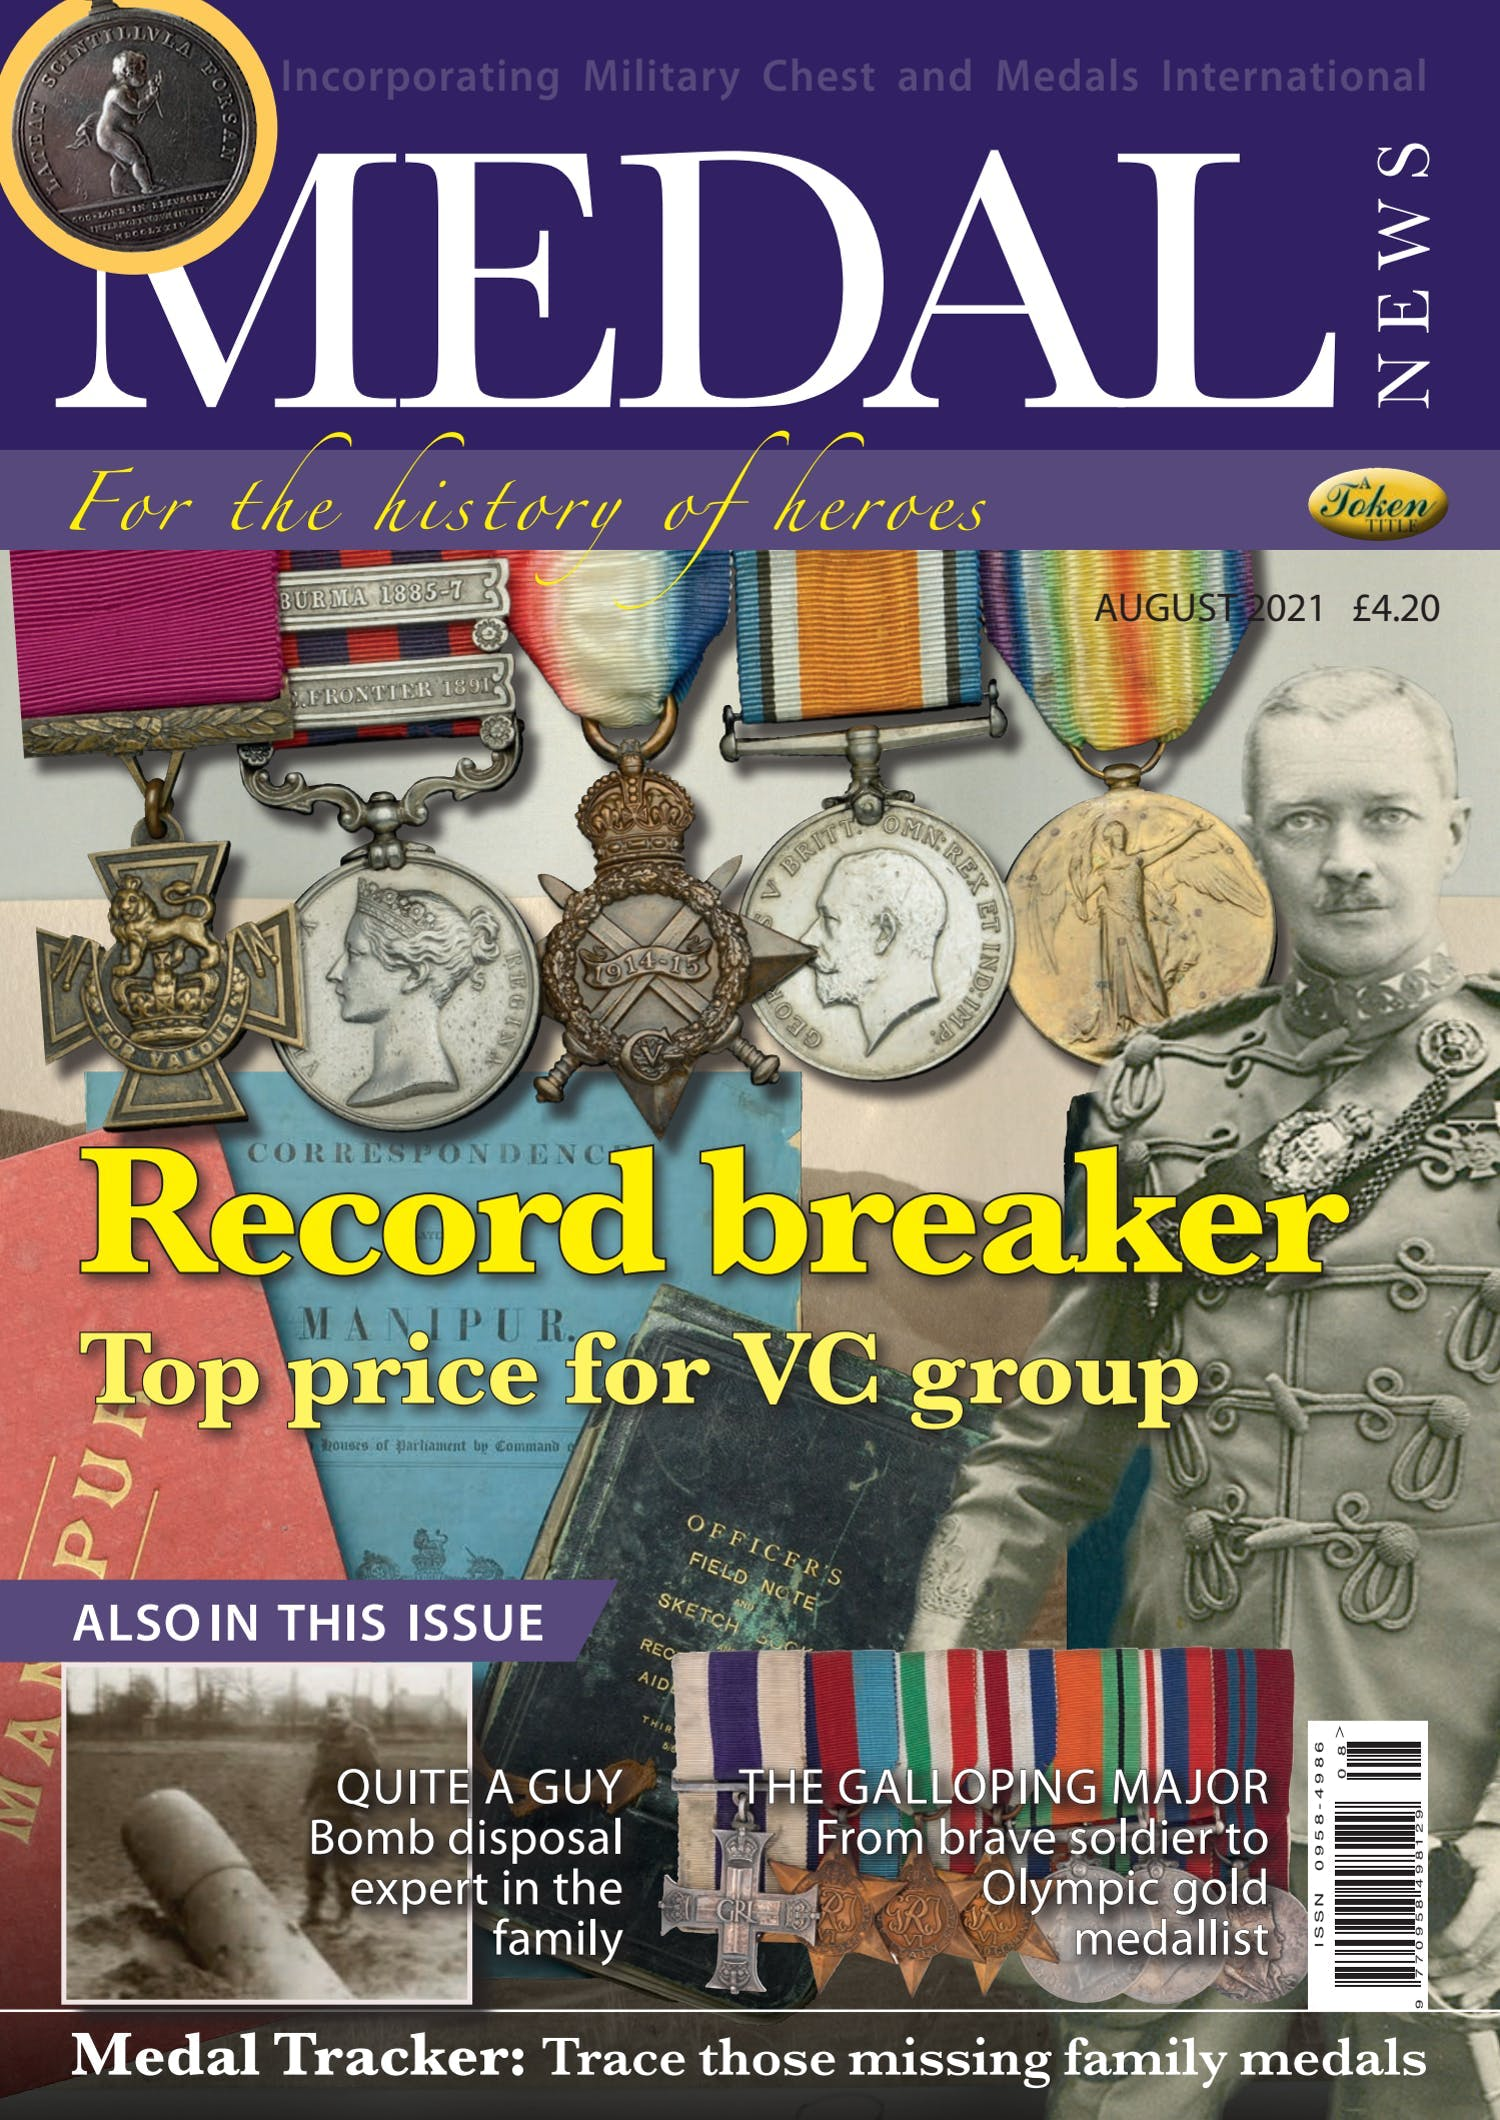 The front cover of Medal News, August 2021 - Volume 59, Number 7